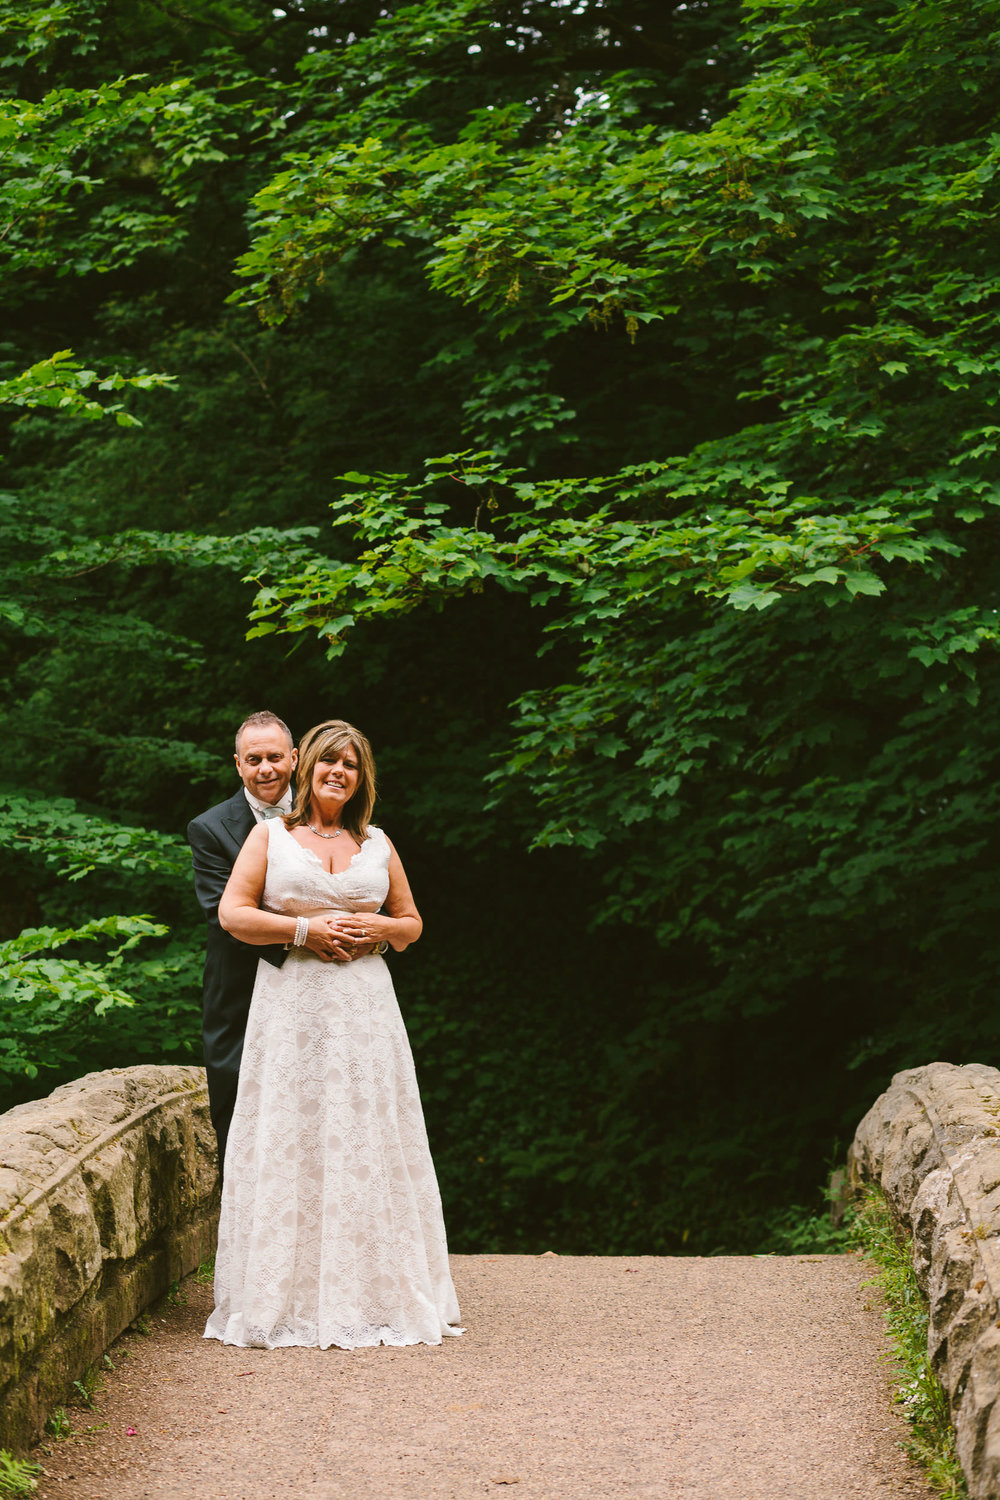 Bride and groom cuddle on bridge with forest in the background